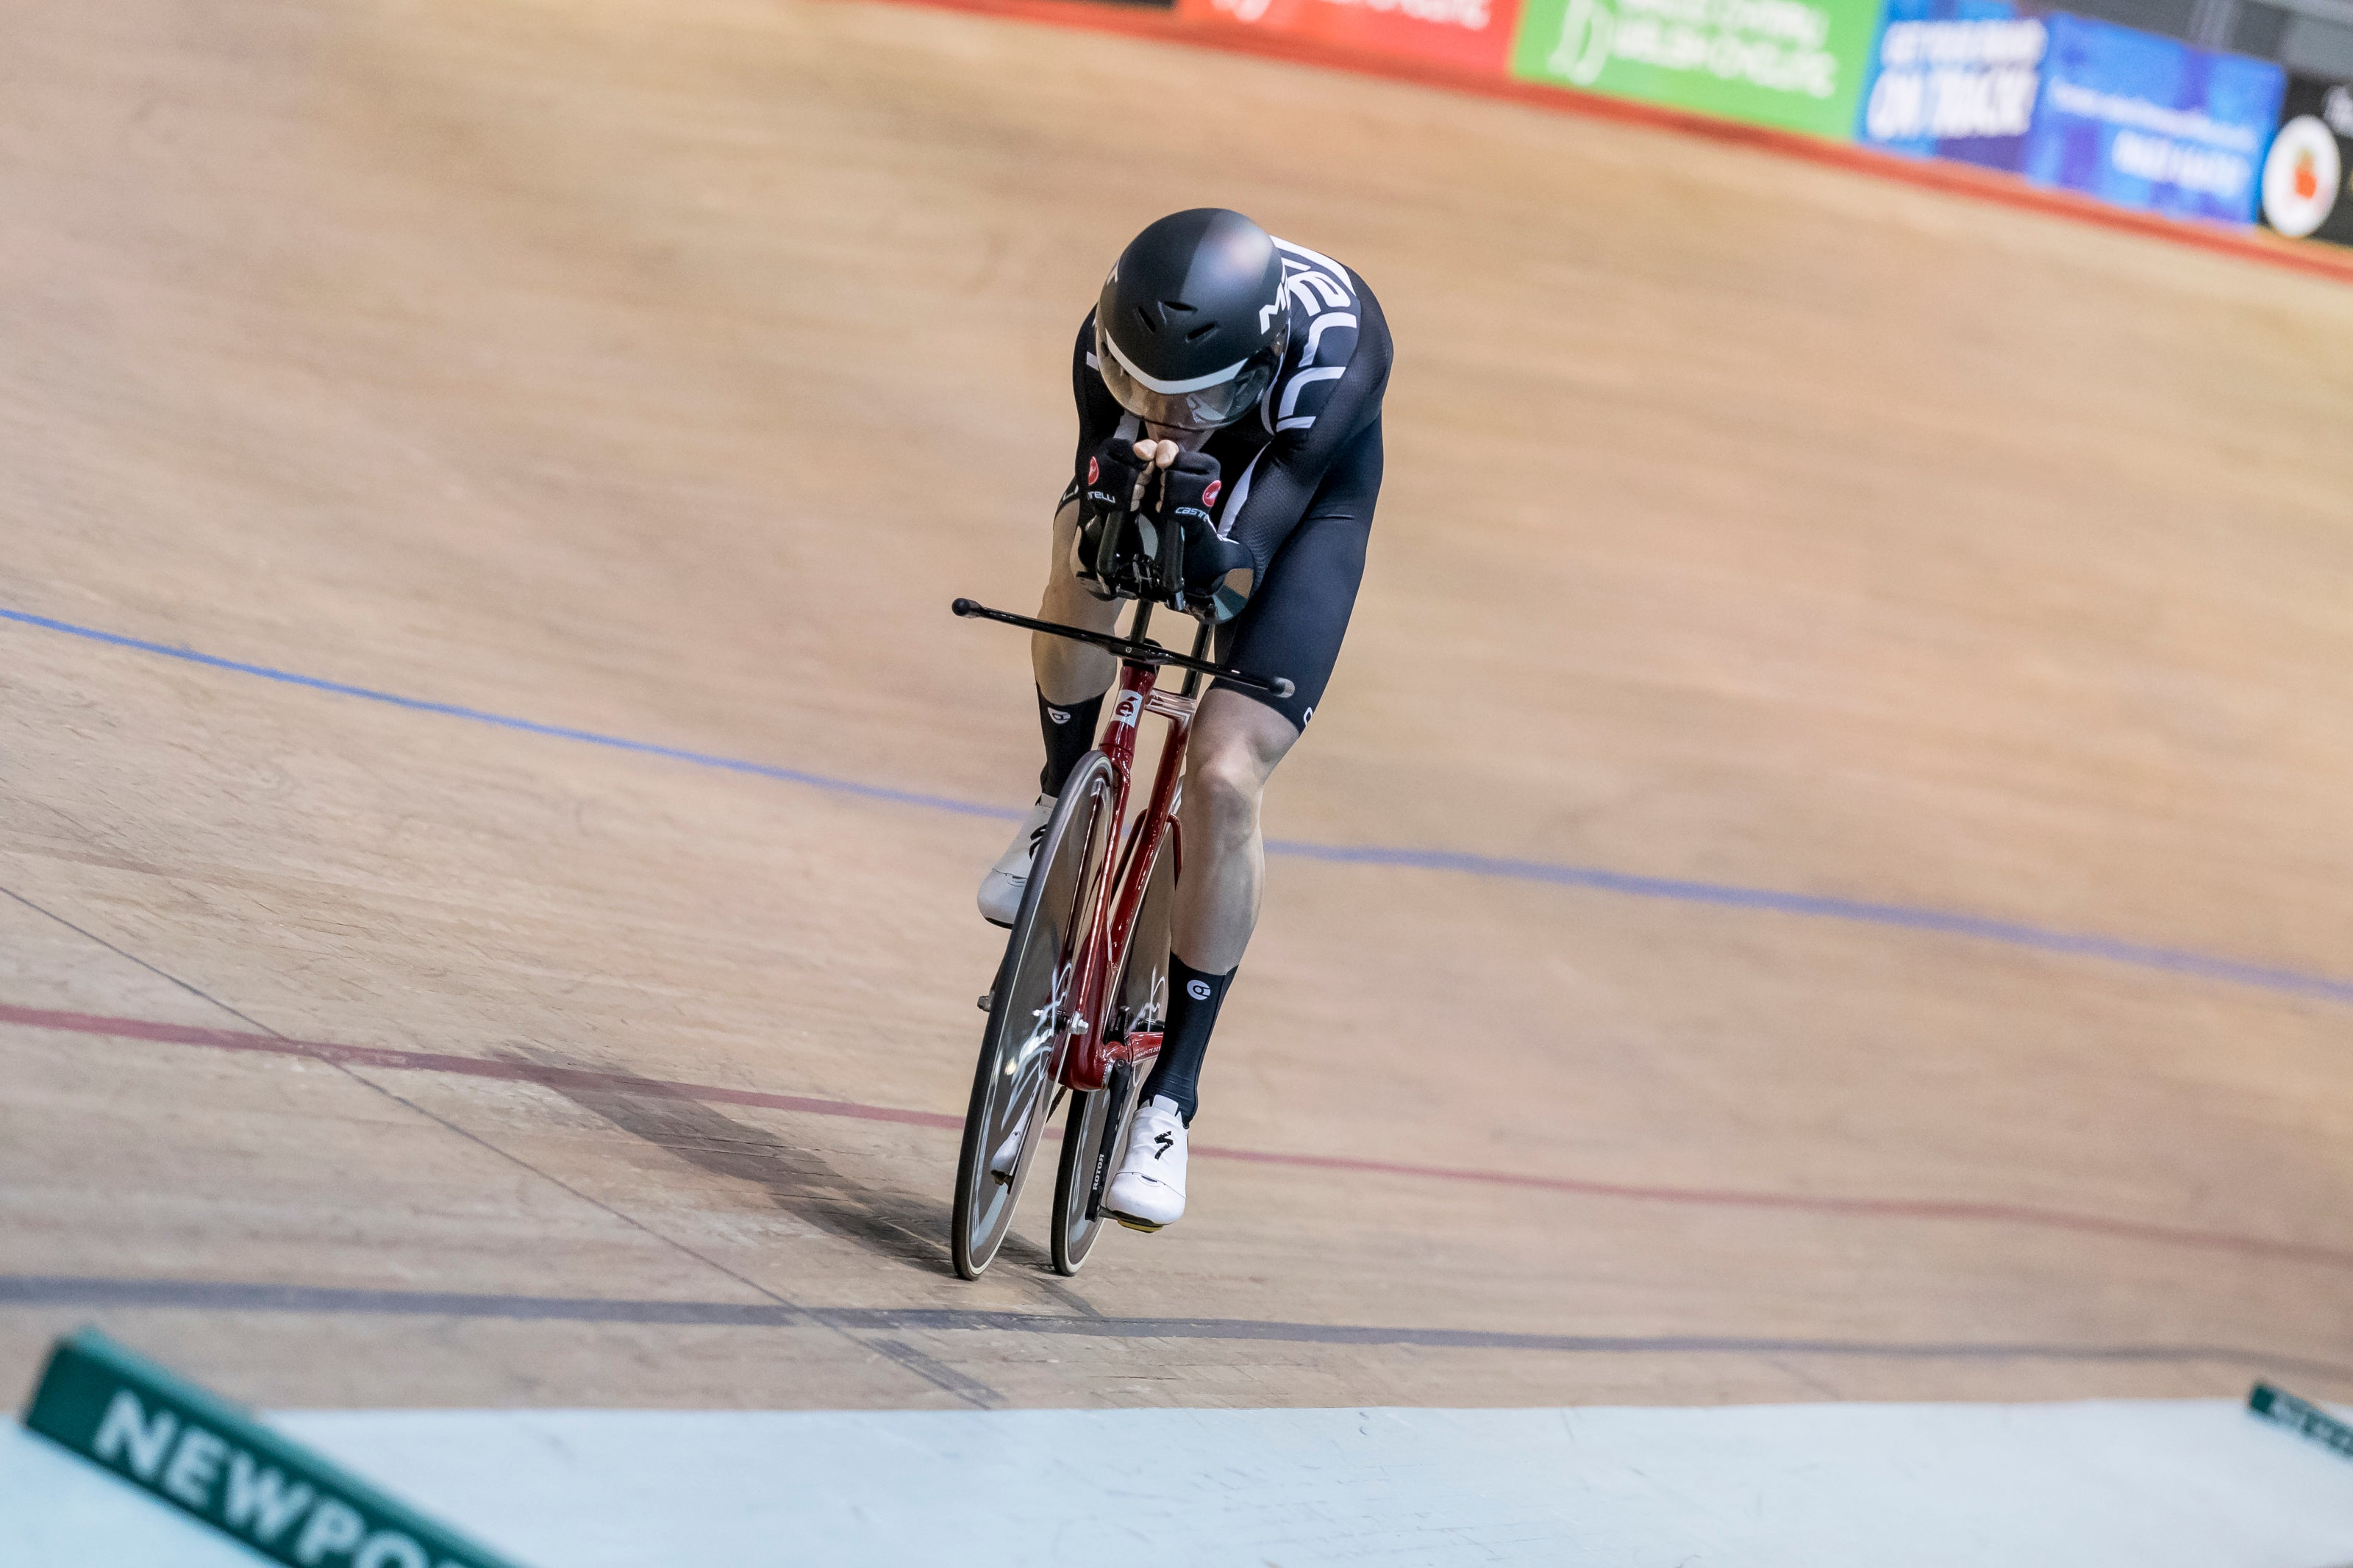 Trying to keep tucked up and as aerodynamic as possible. Photo credit to Andy Whitehouse.